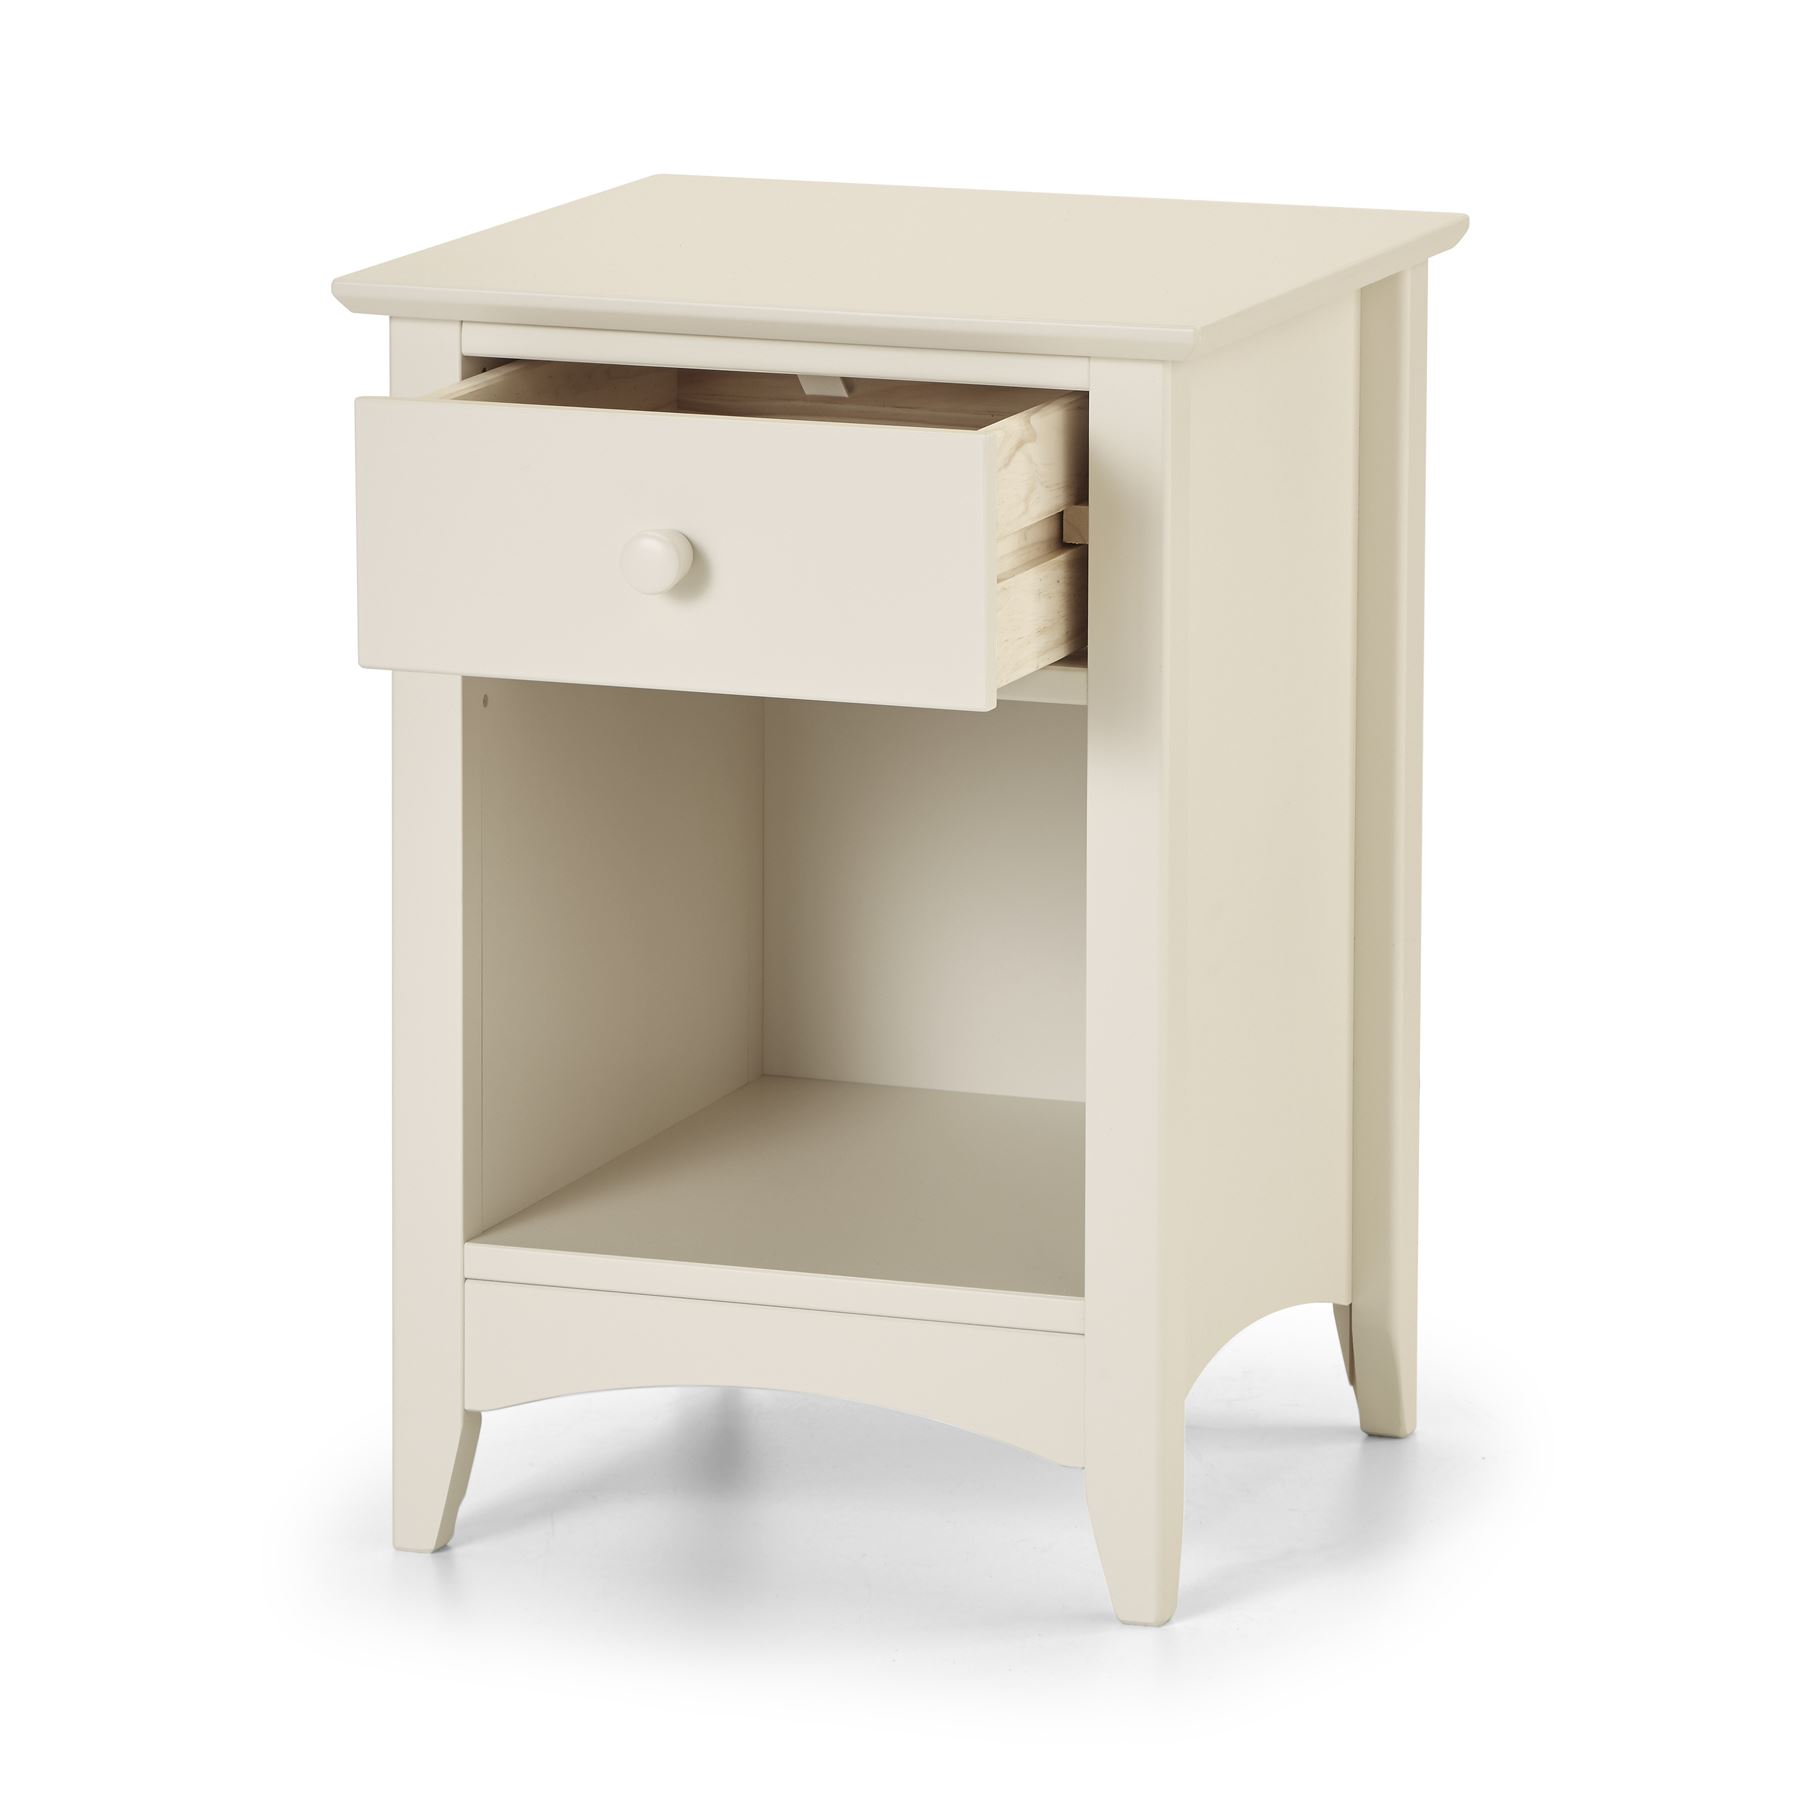 Julian Bowen Cameo Stone White Wood 1 Drawer Bedside Cabinet Table night Stand